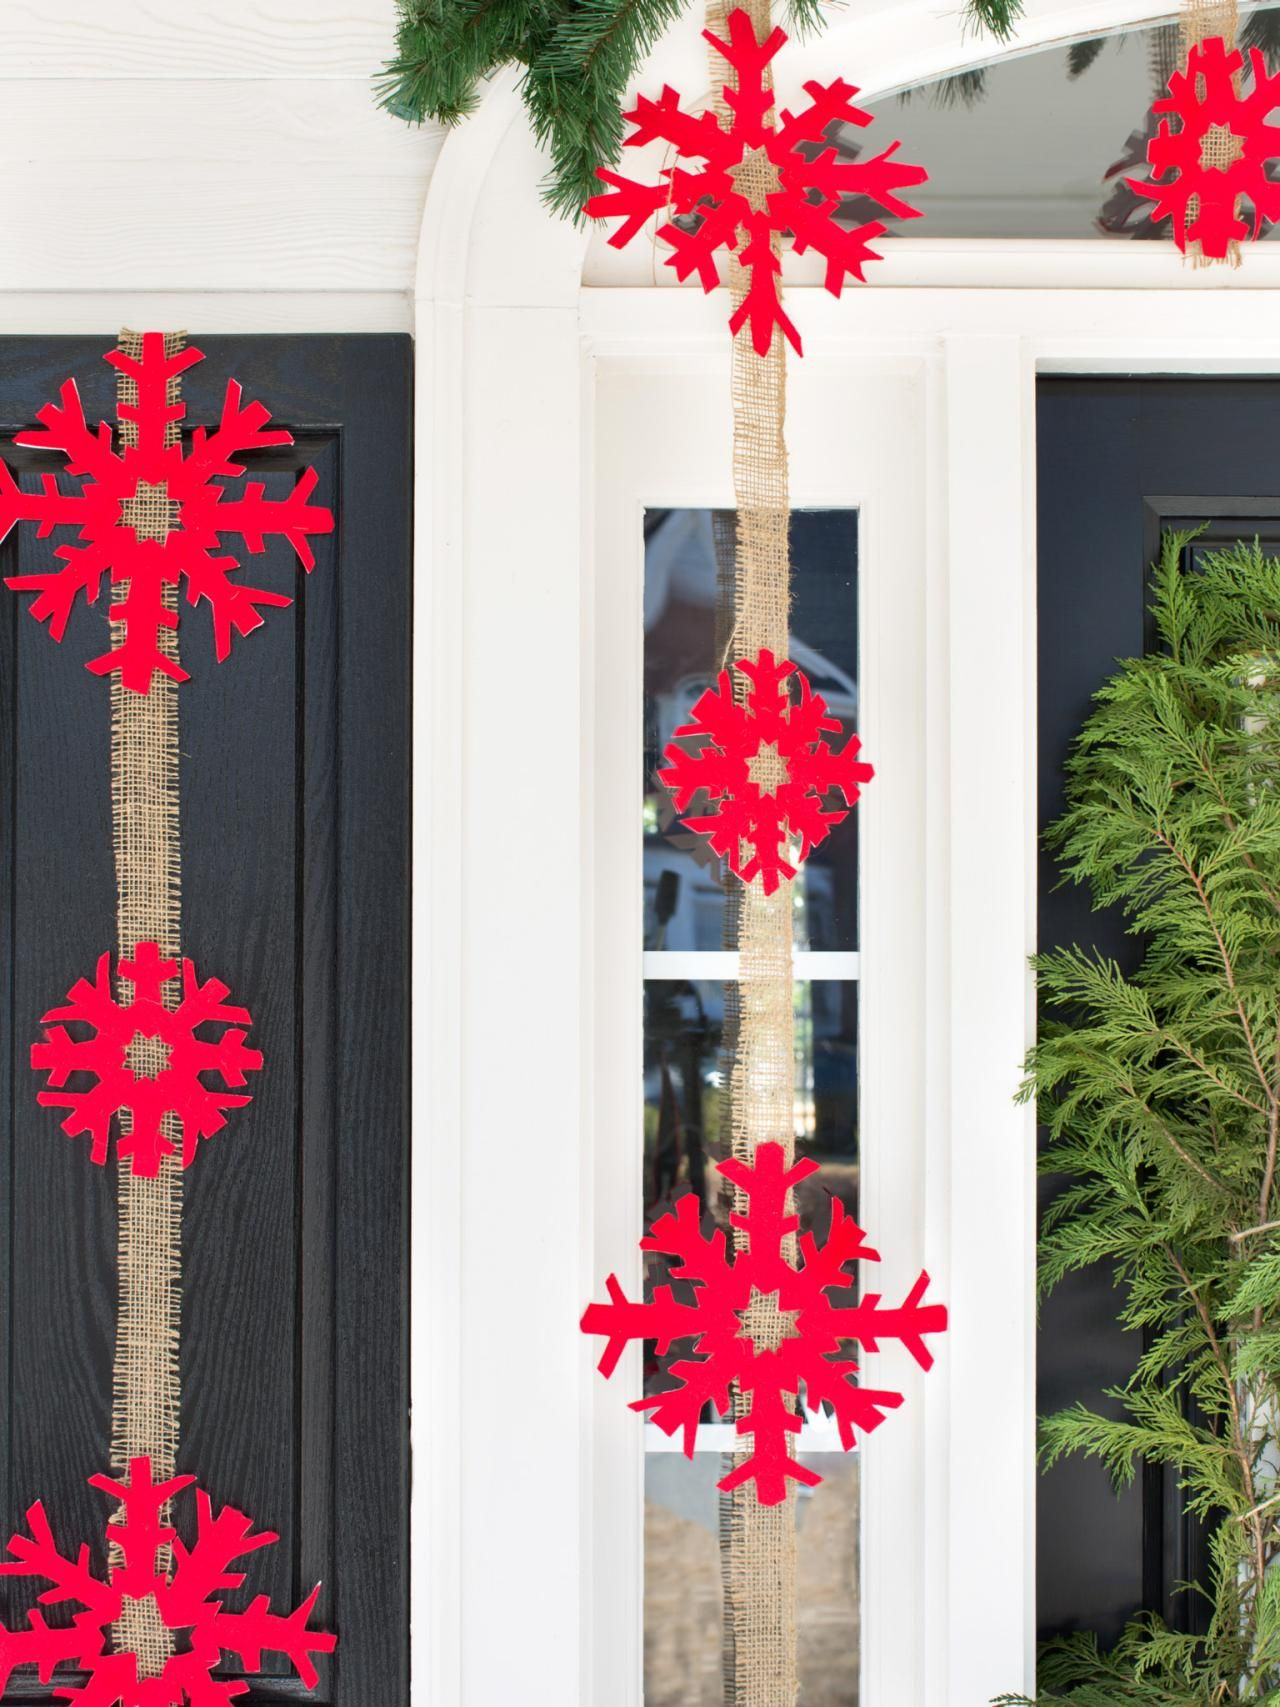 Outdoor Holiday Decorations | Holidays, Decoration and Christmas decor